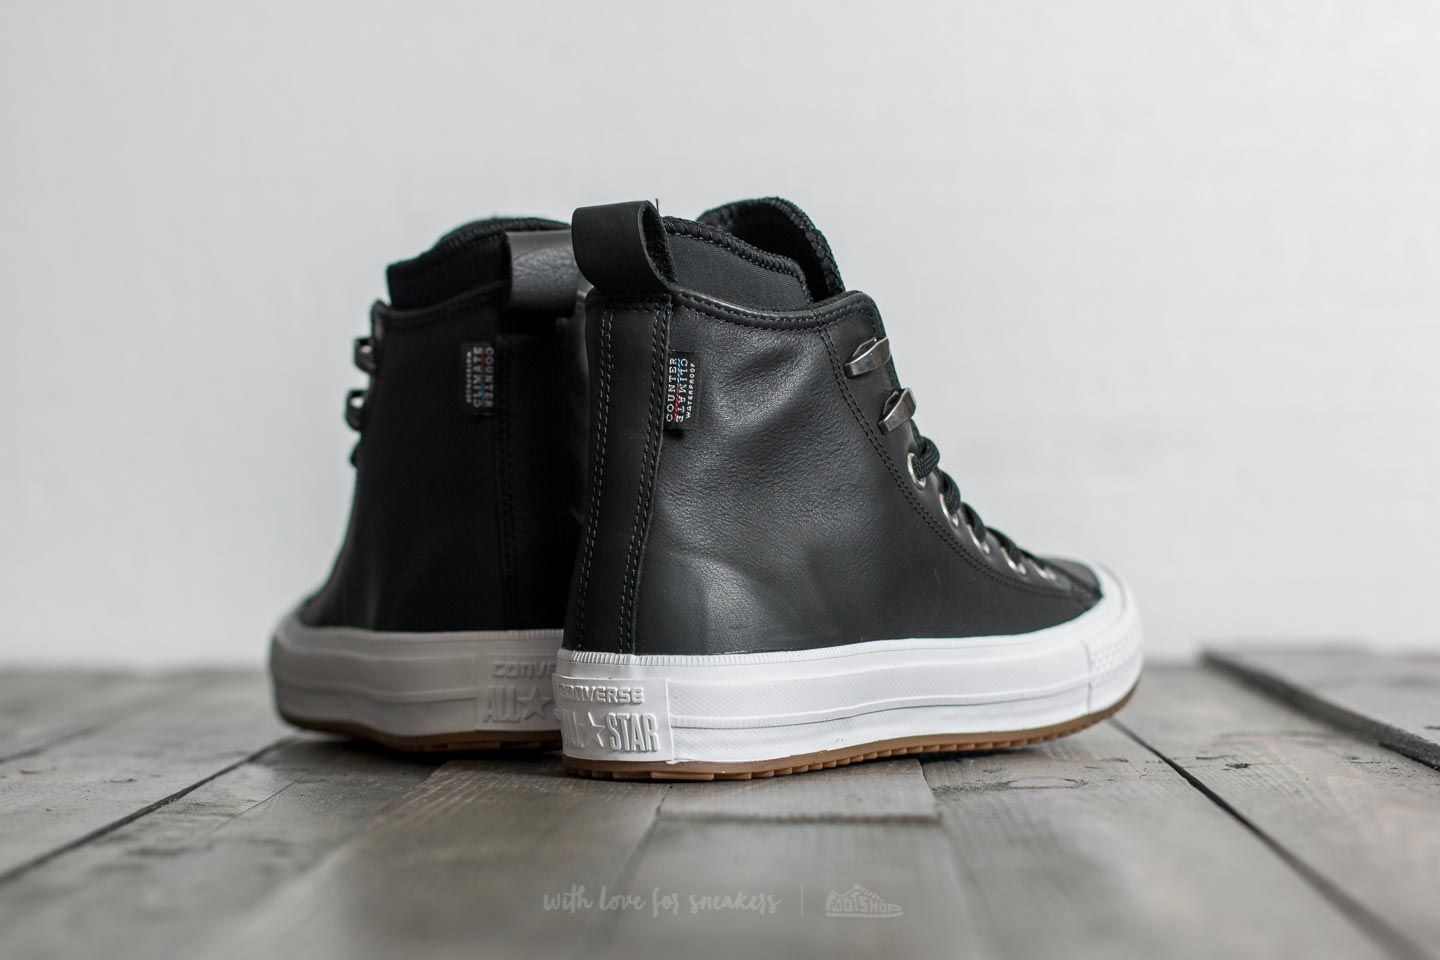 ... sweden converse chuck taylor all star waterproof boot hi black black  white at a great 719e8 21d4050da